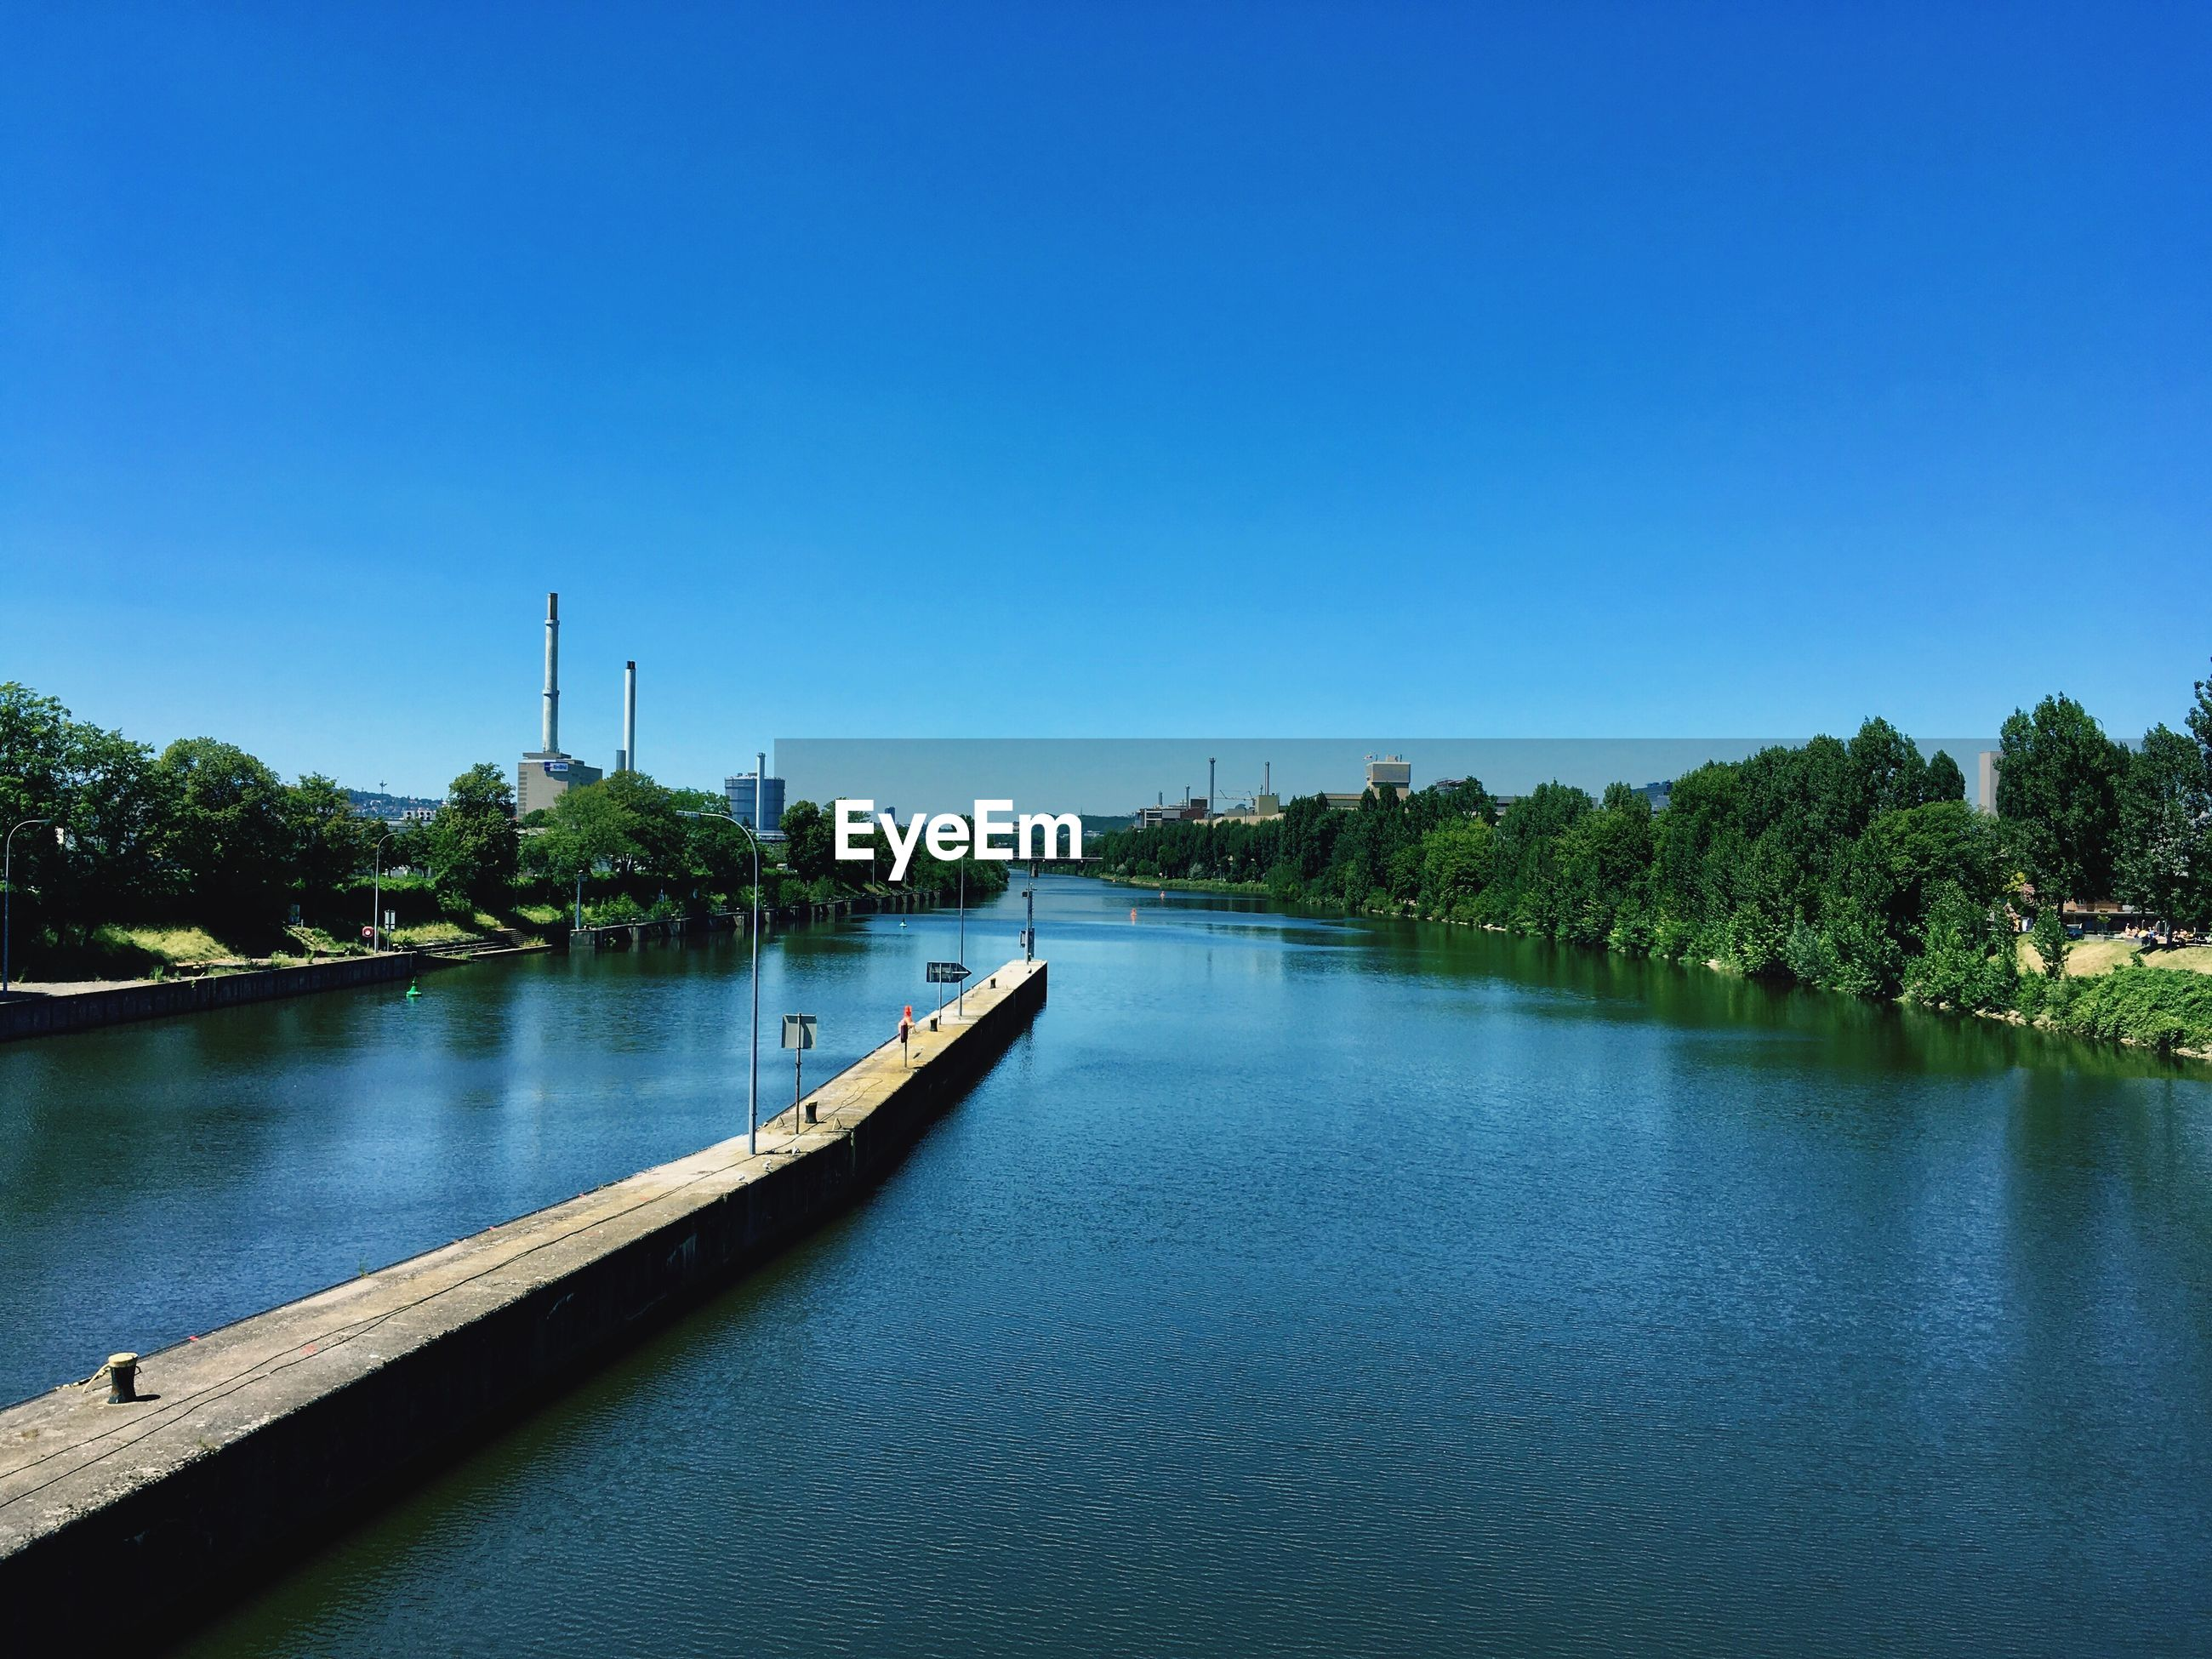 VIEW OF RIVER AGAINST CLEAR BLUE SKY